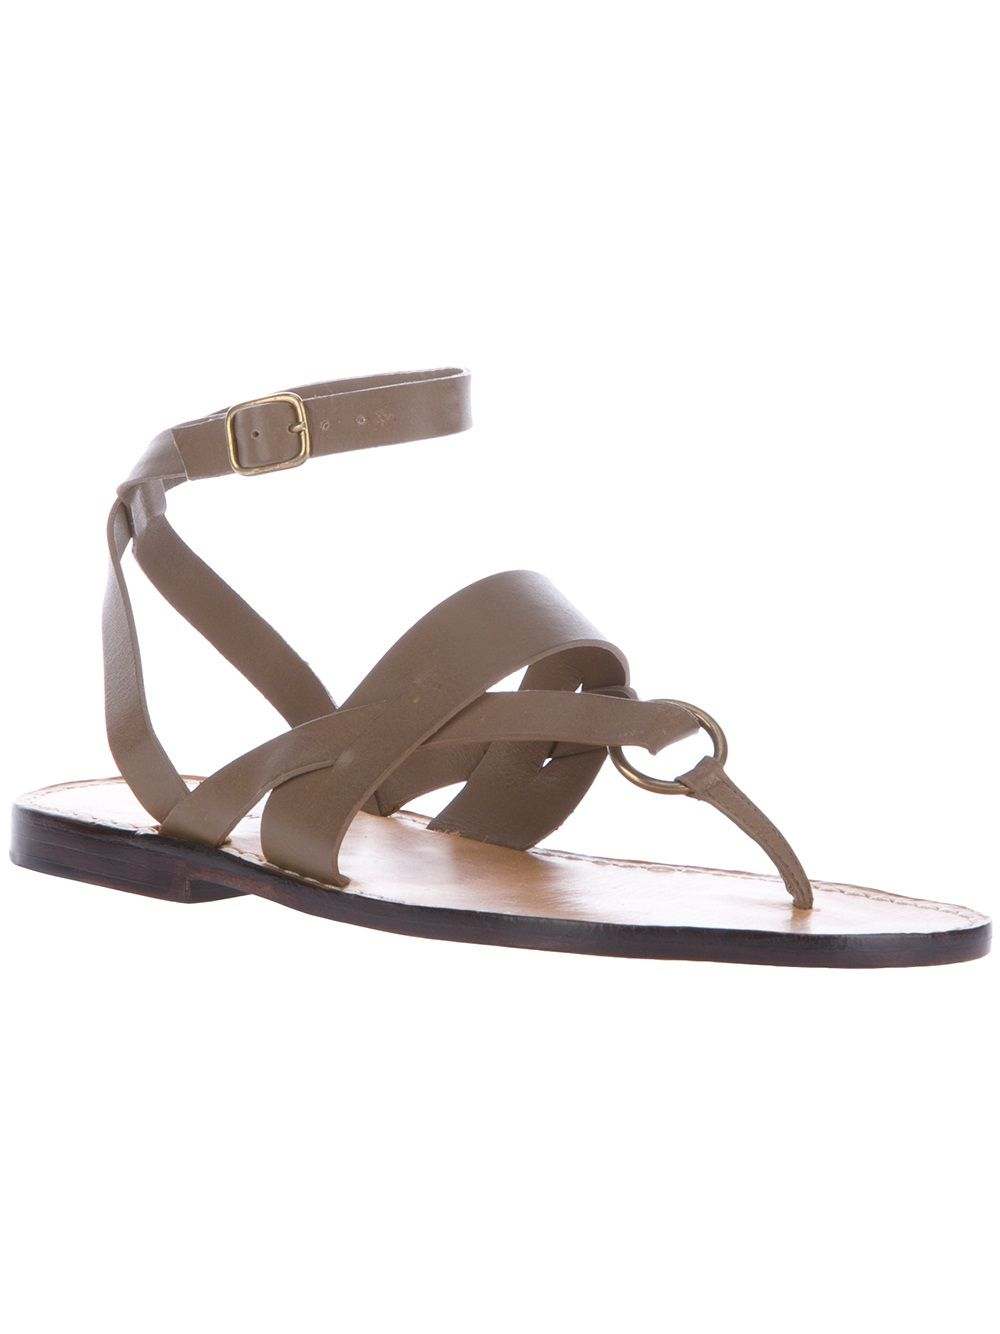 Tila March Thong Sandal